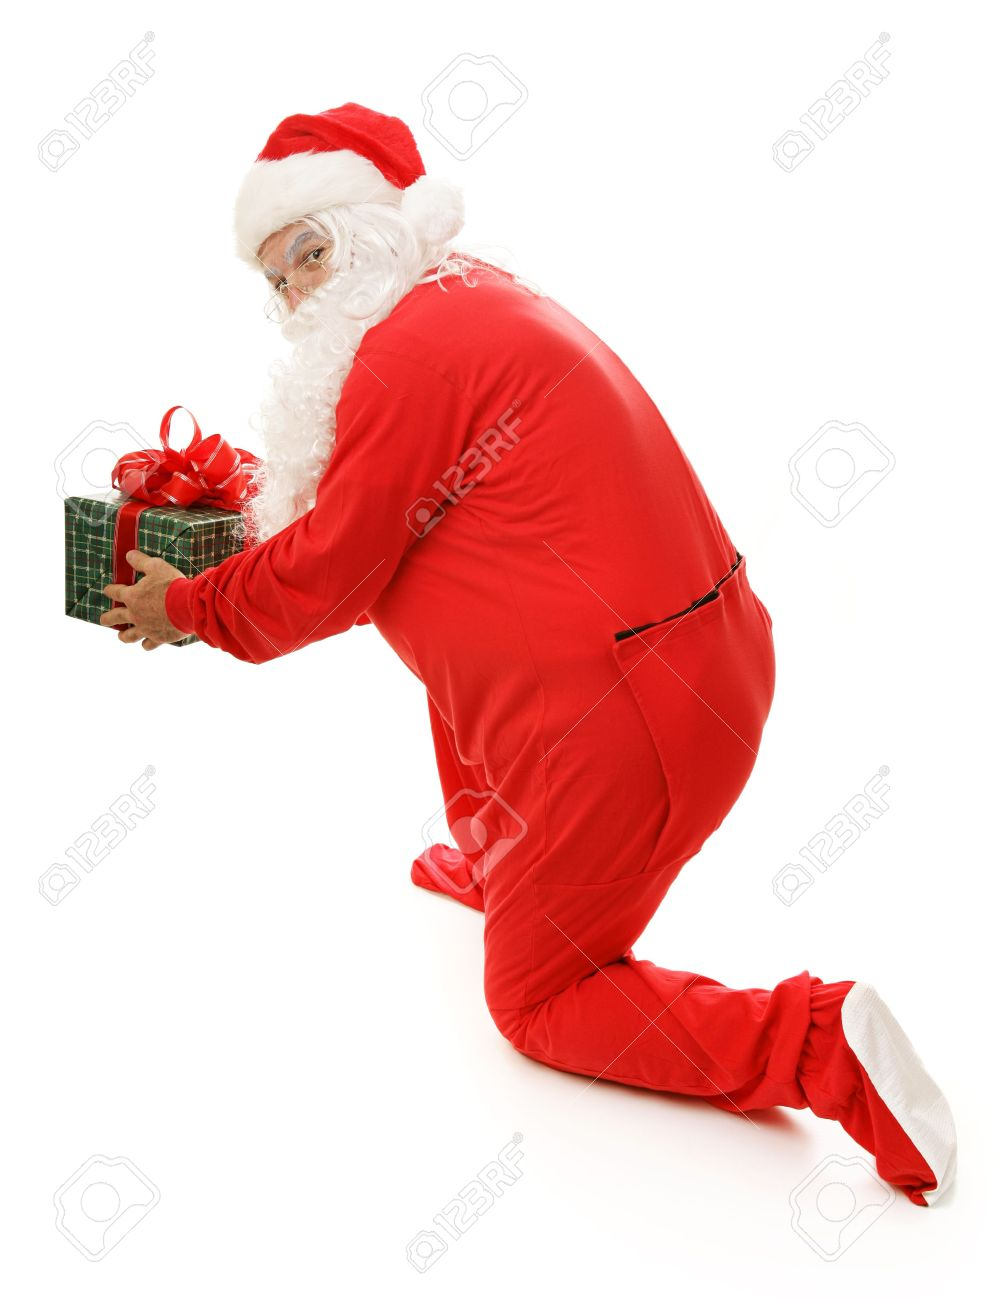 50d19f938b Santa Clause in his pajamas caught in the act of setting down a gift. Full